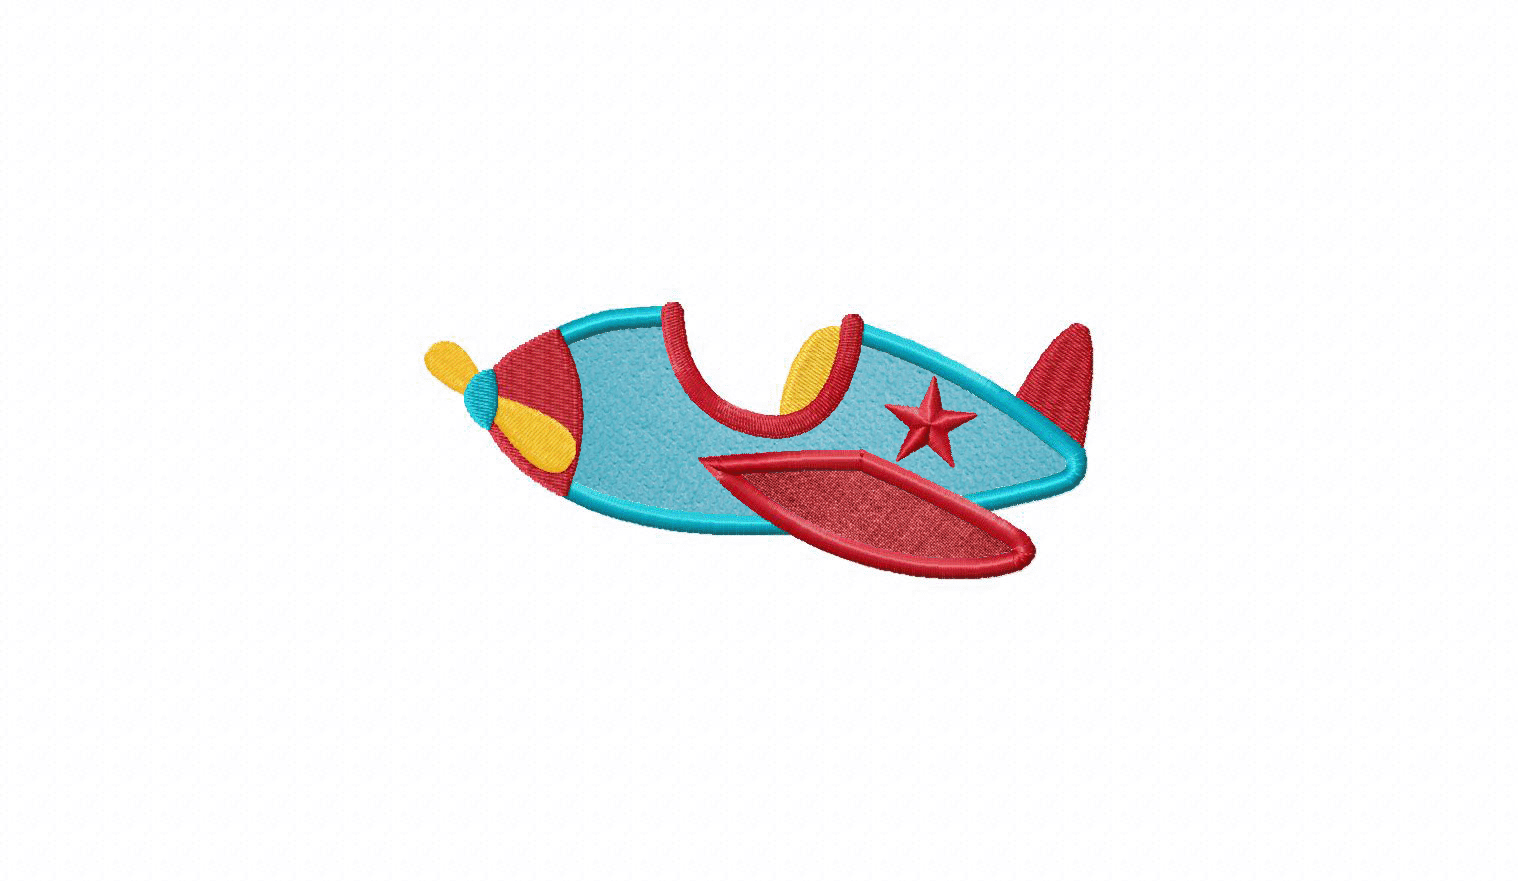 kids plane available in both applique and filled stitch